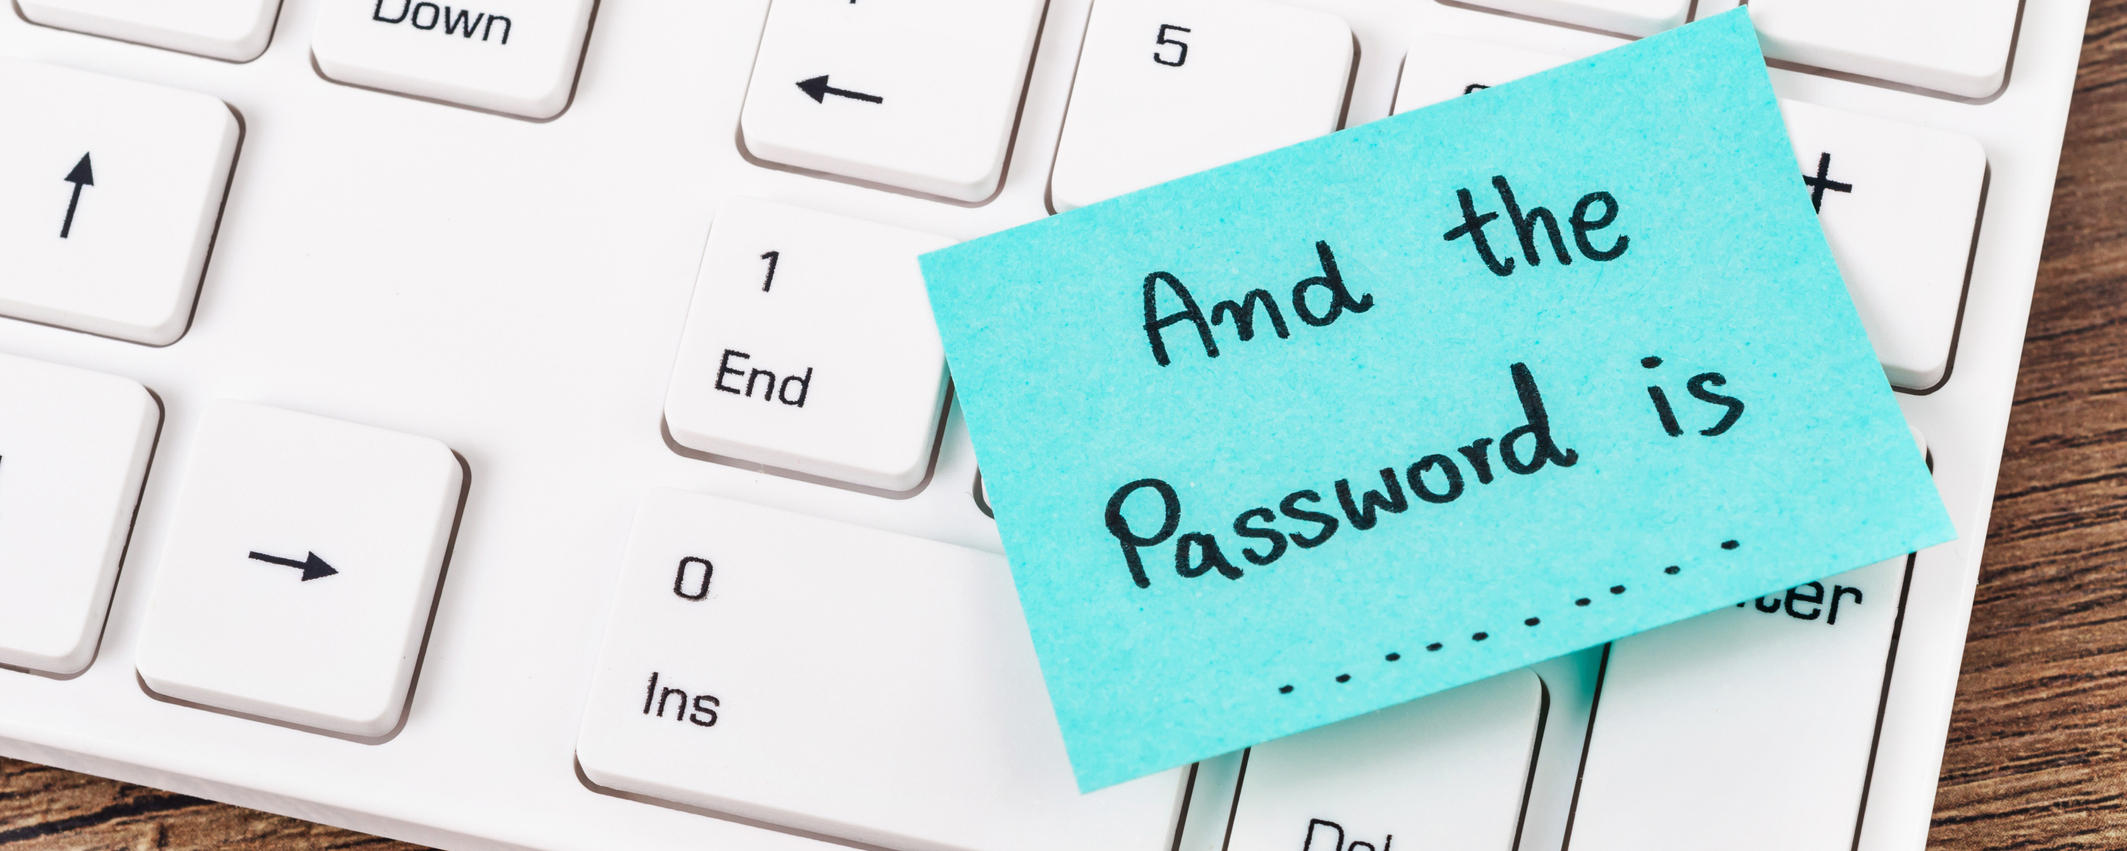 5 tips for better password security [INFOGRAPHIC] – TruShield Insurance